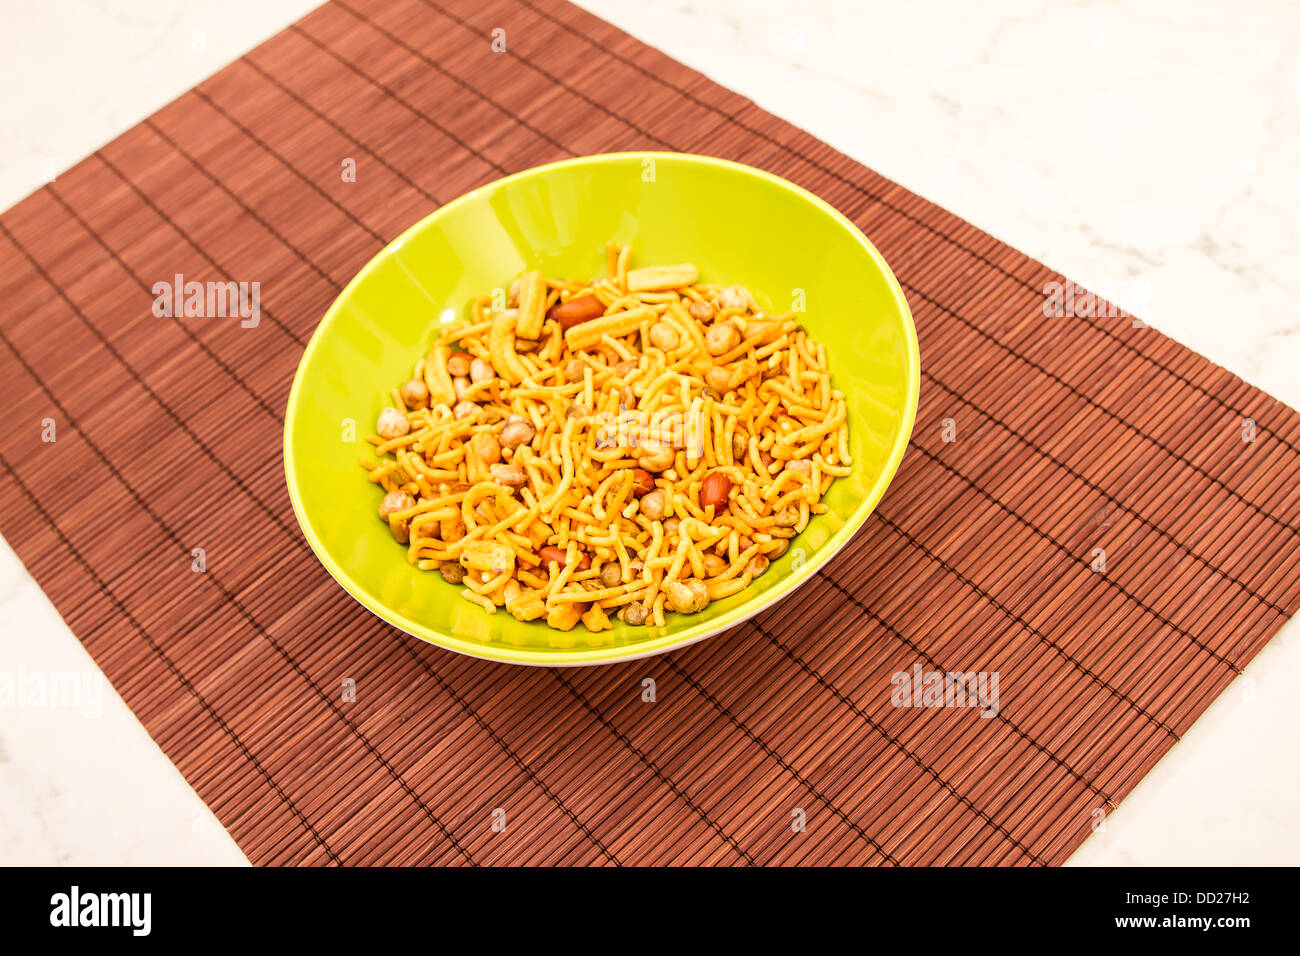 Snack Bombay Mix, a typical Indian snack - Stock Image